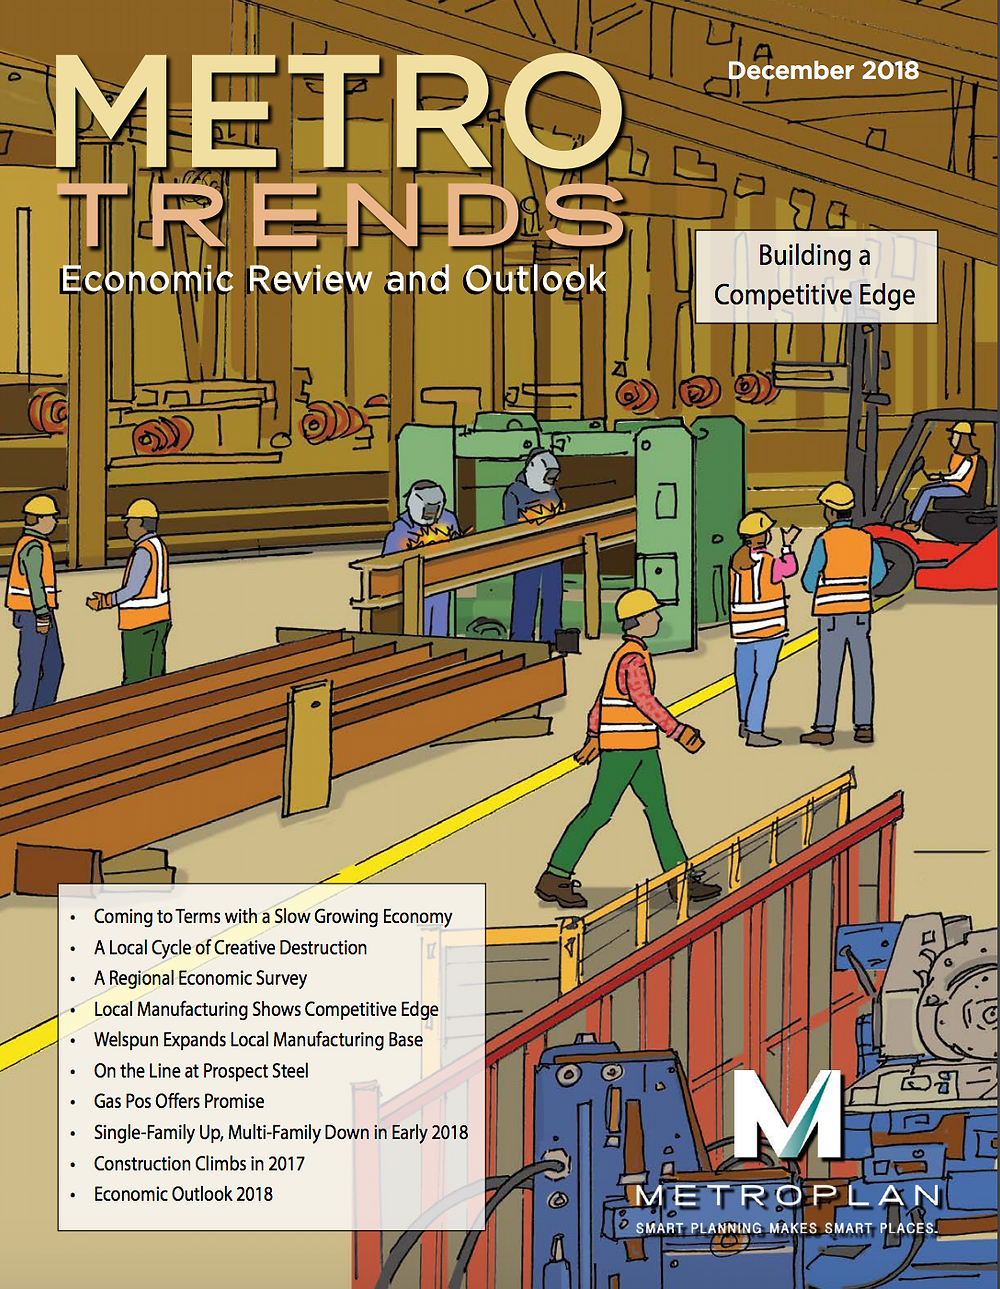 Gas Pos in Metropla's MetroTrends Economic Review and Outlook